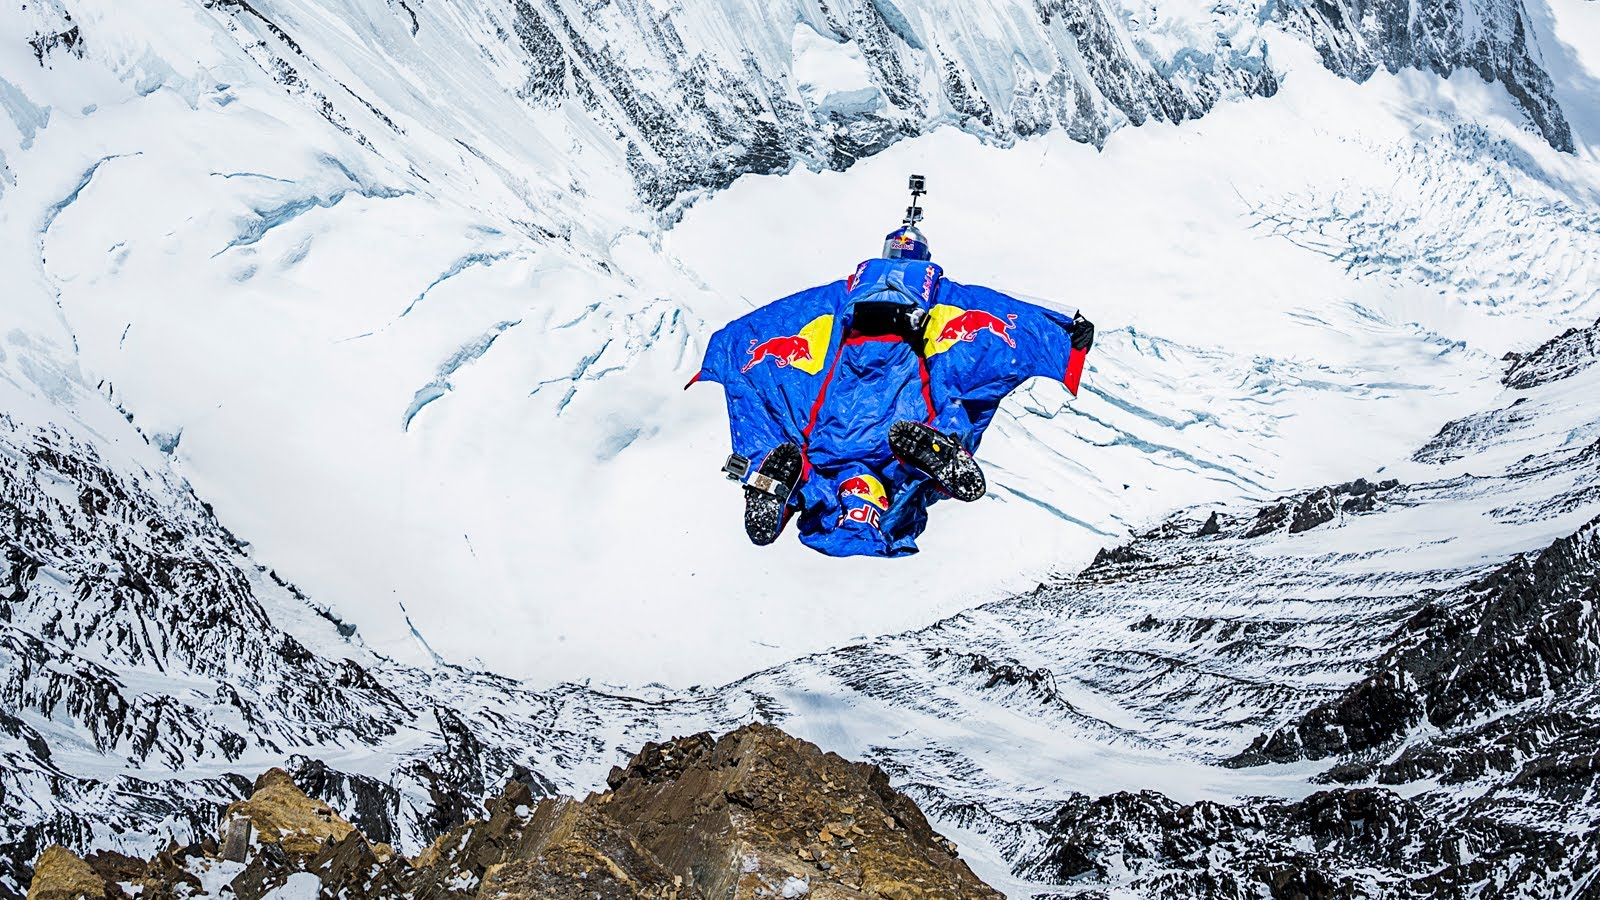 Valery Rozov Jumps Off Mount Everest in Highest BASE Jump Ever